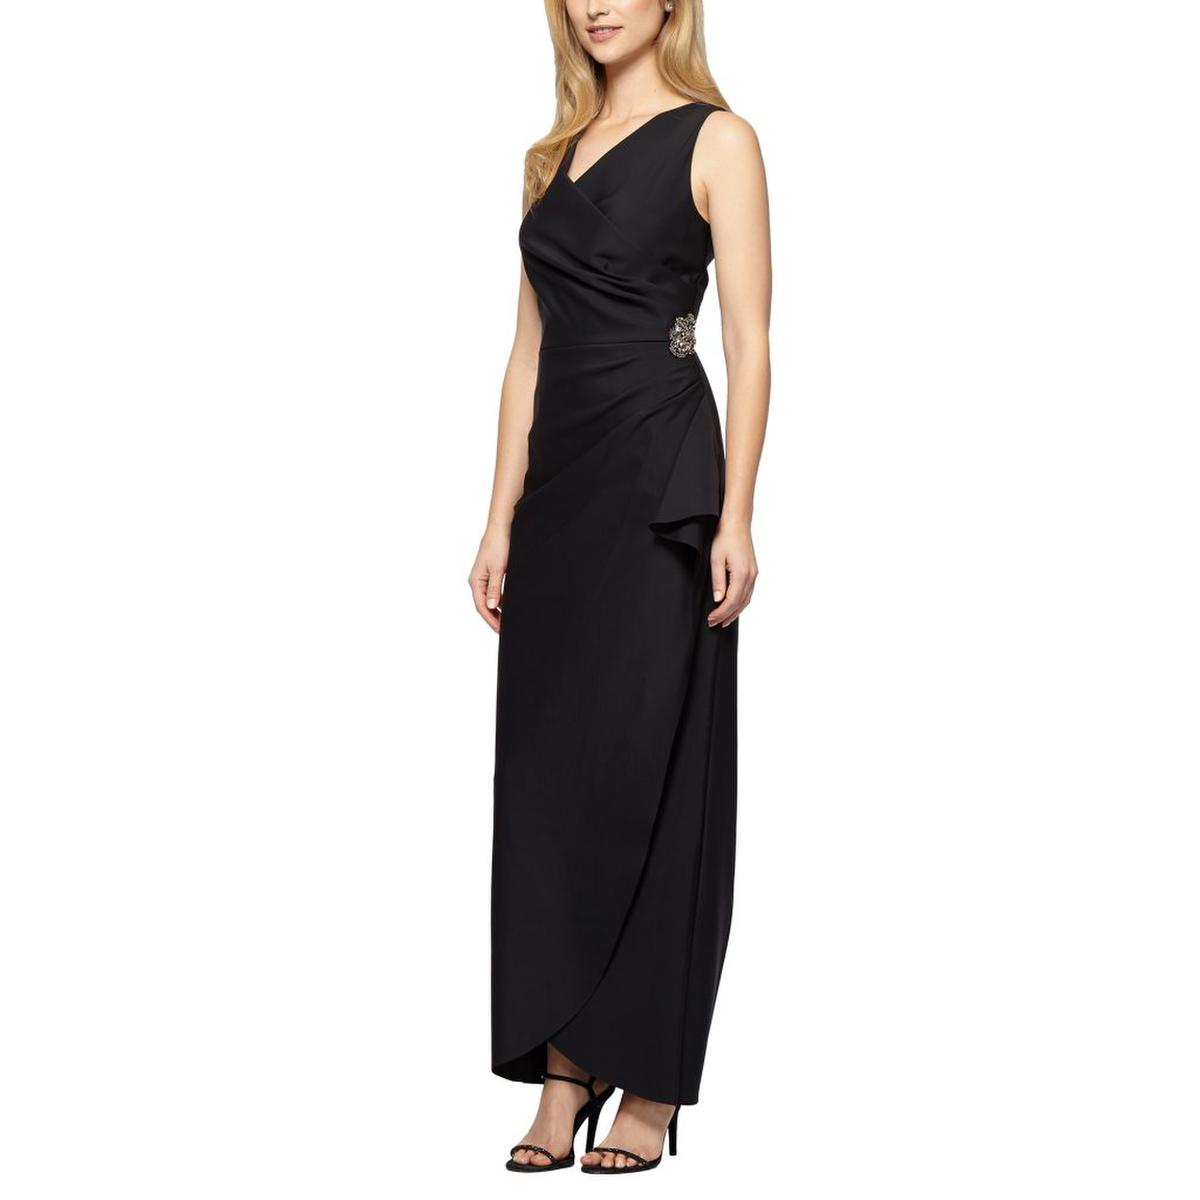 ALEX APPAREL GROUP INC - Sleeveless V-Neck Wrap Waist Gown